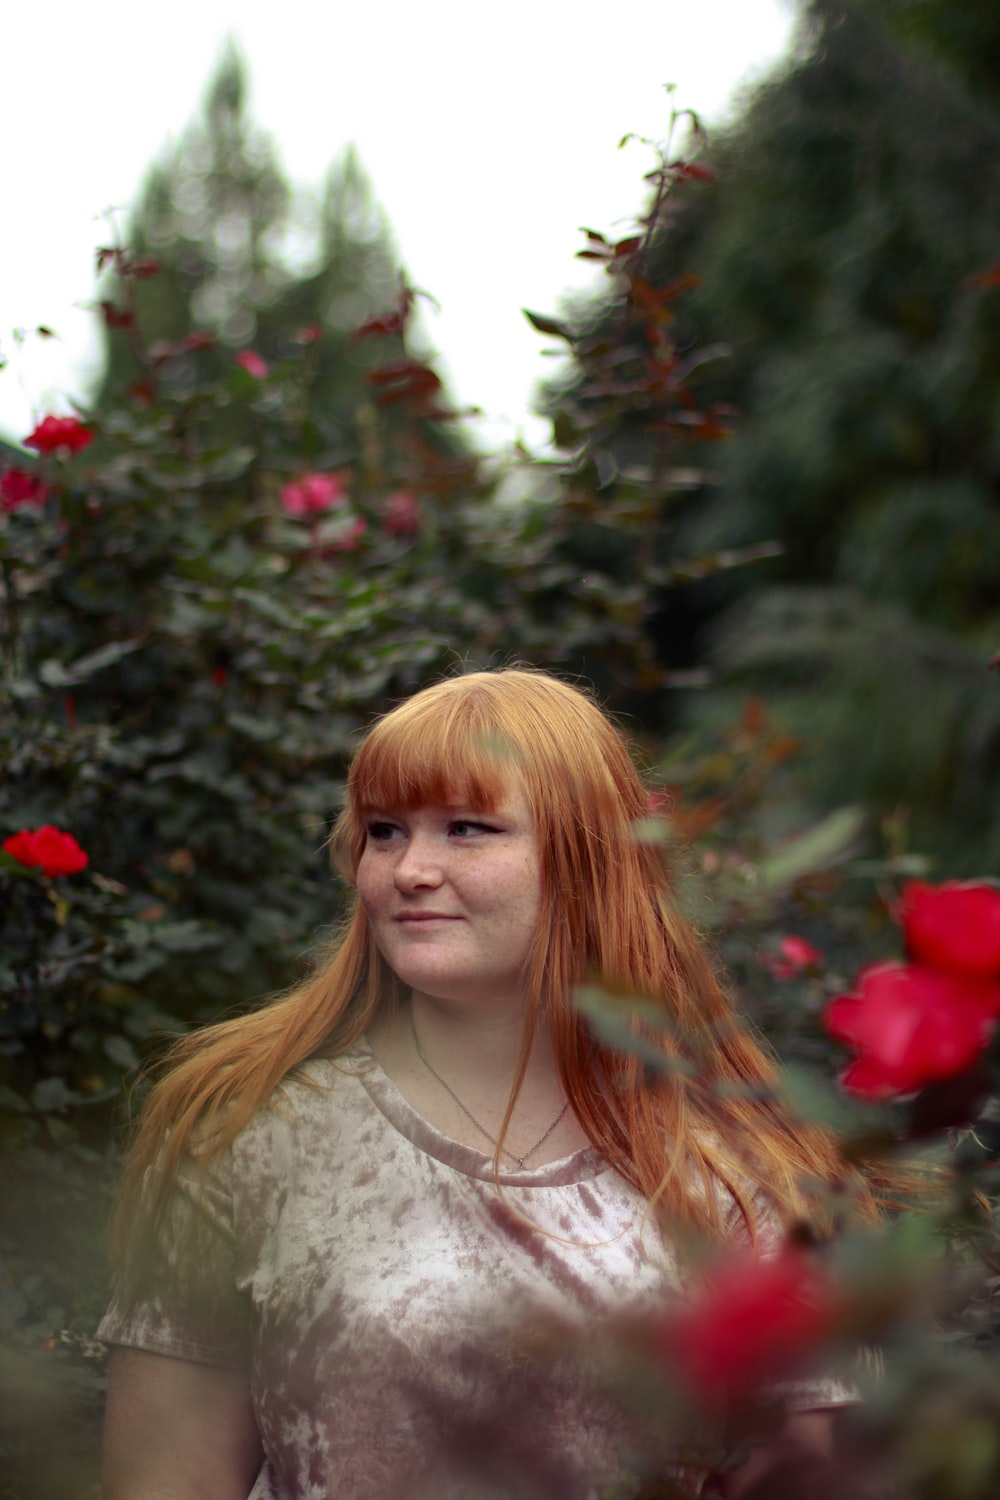 woman looking at her right beside red flowers